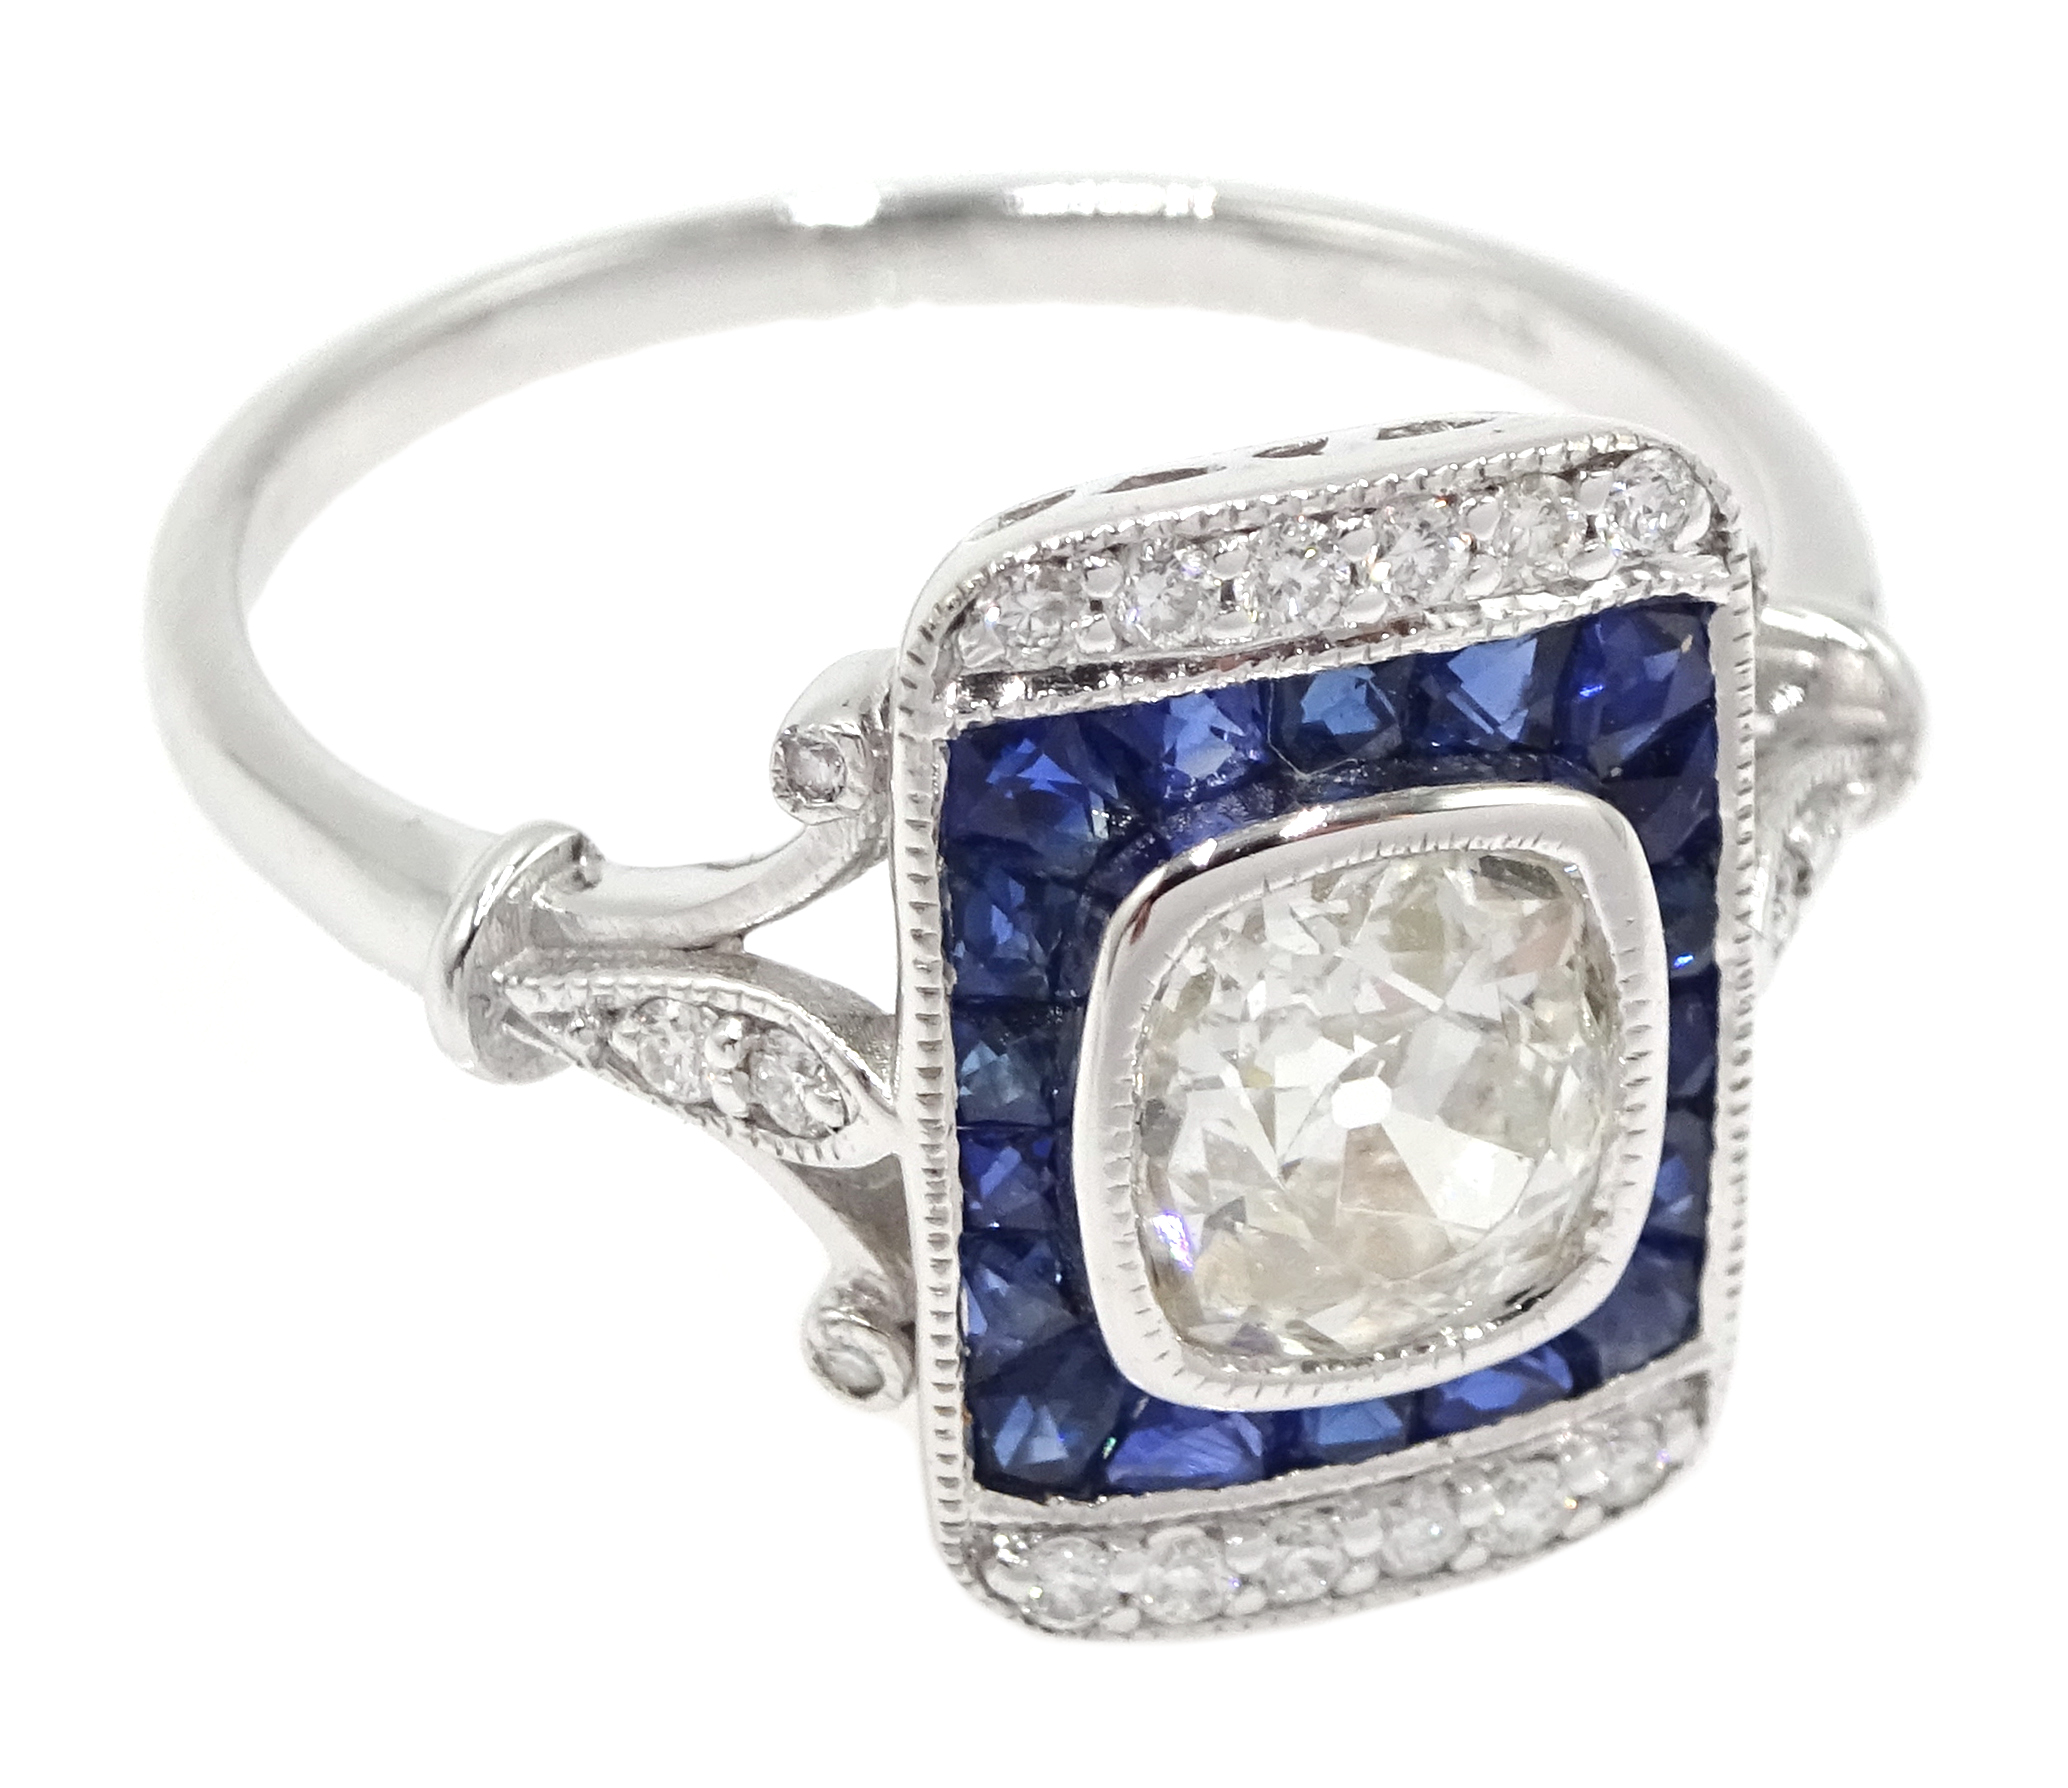 Art Deco style 18ct white gold, sapphire and diamond ring, central old cut diamond surrounded by - Image 3 of 6